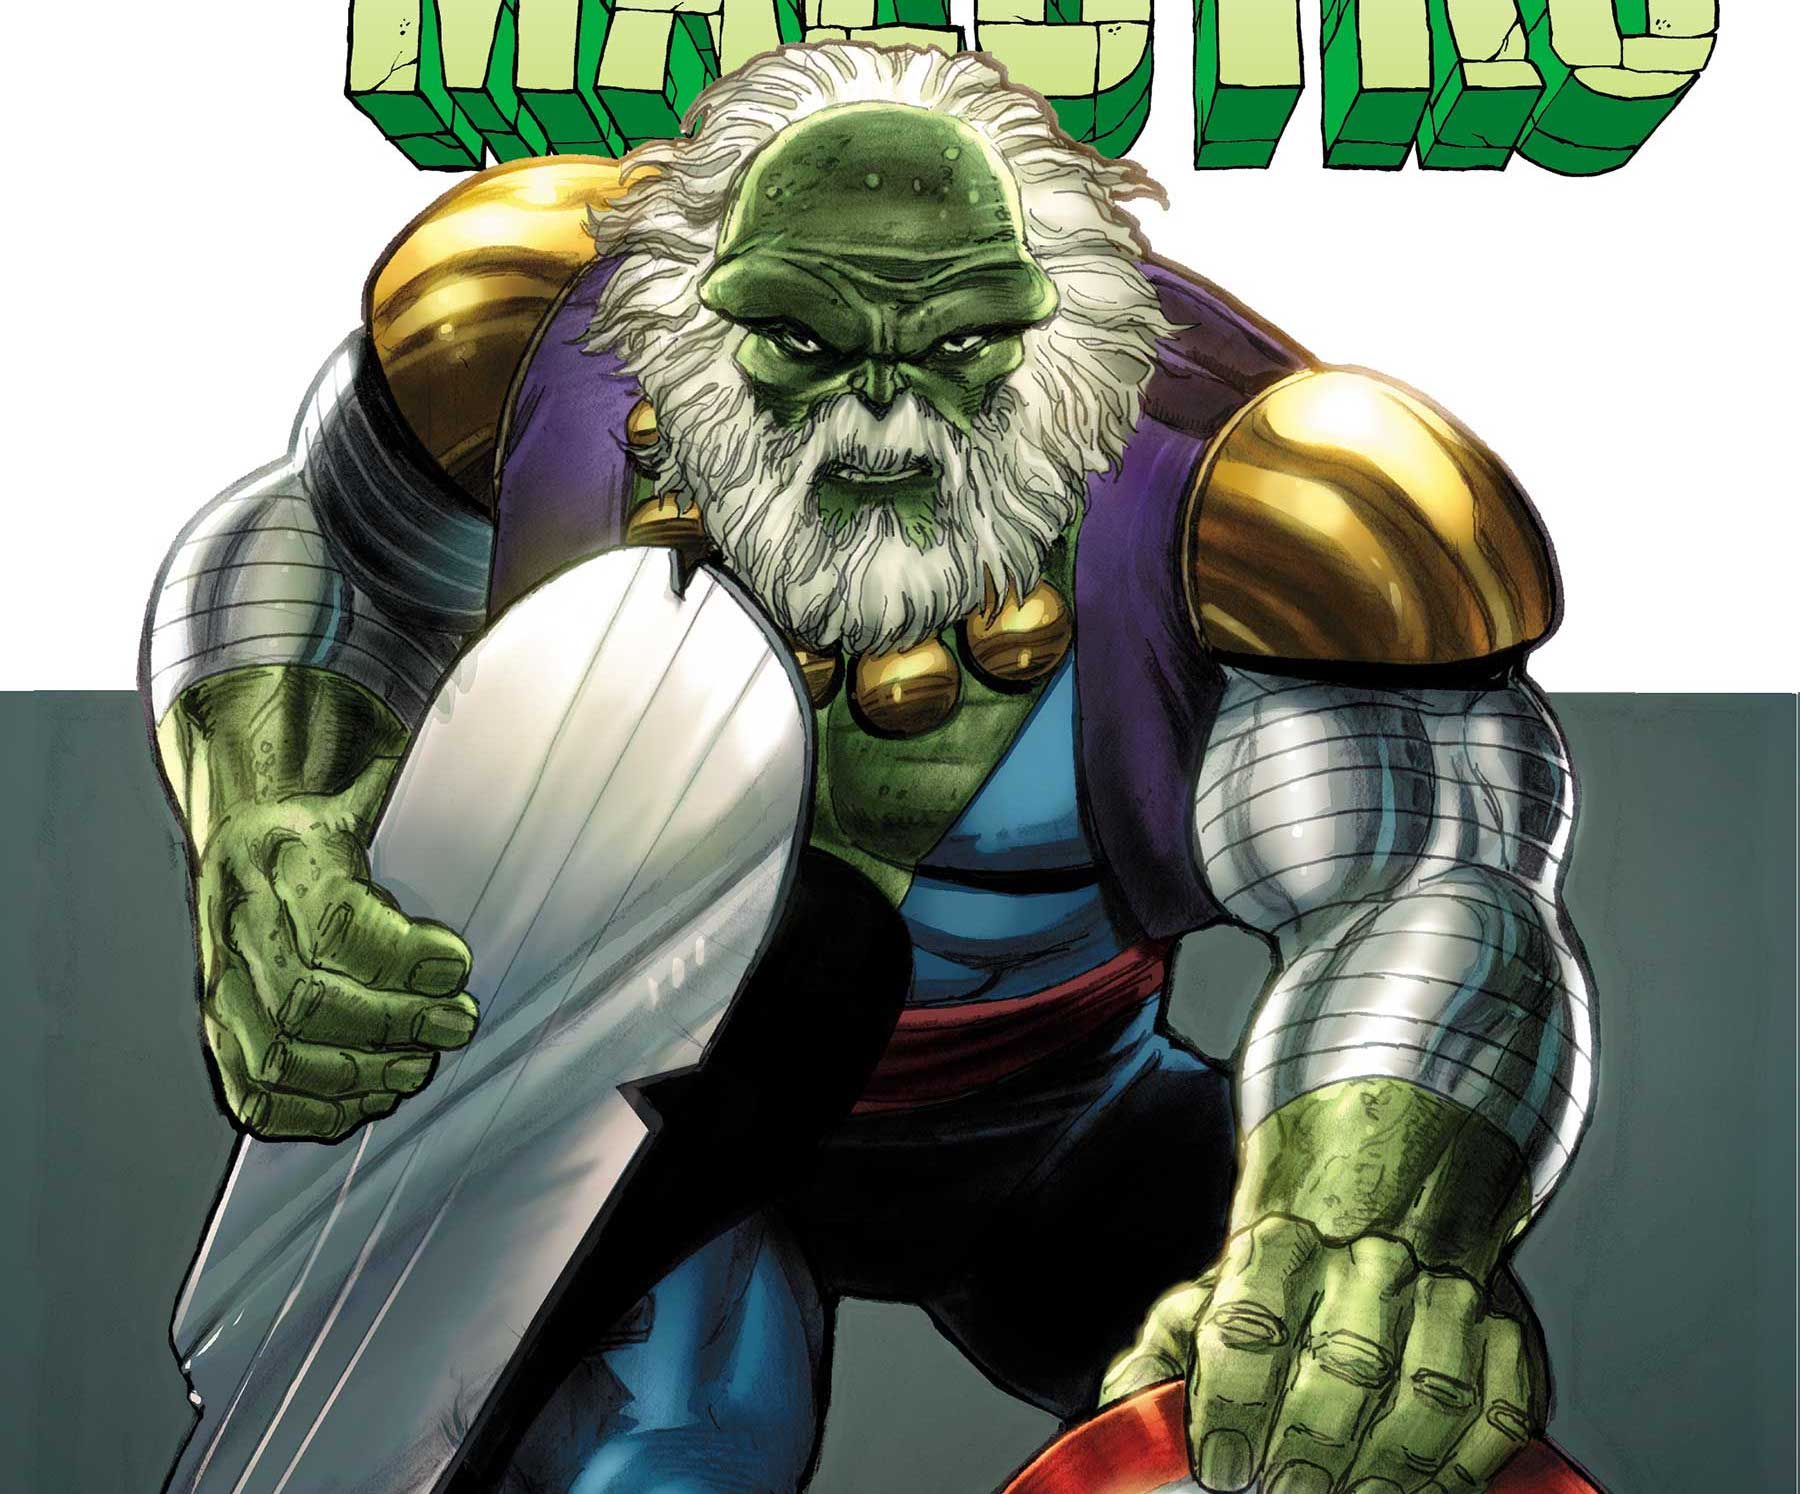 Marvel Comics has announced Incredible Hulk writer Peter David is taking on Maestro with a new origin story series this August. Titled Maestro, the series will be drawn by Dale Keown and Germán Peralta on focuses on fleshing out the villain's origin.